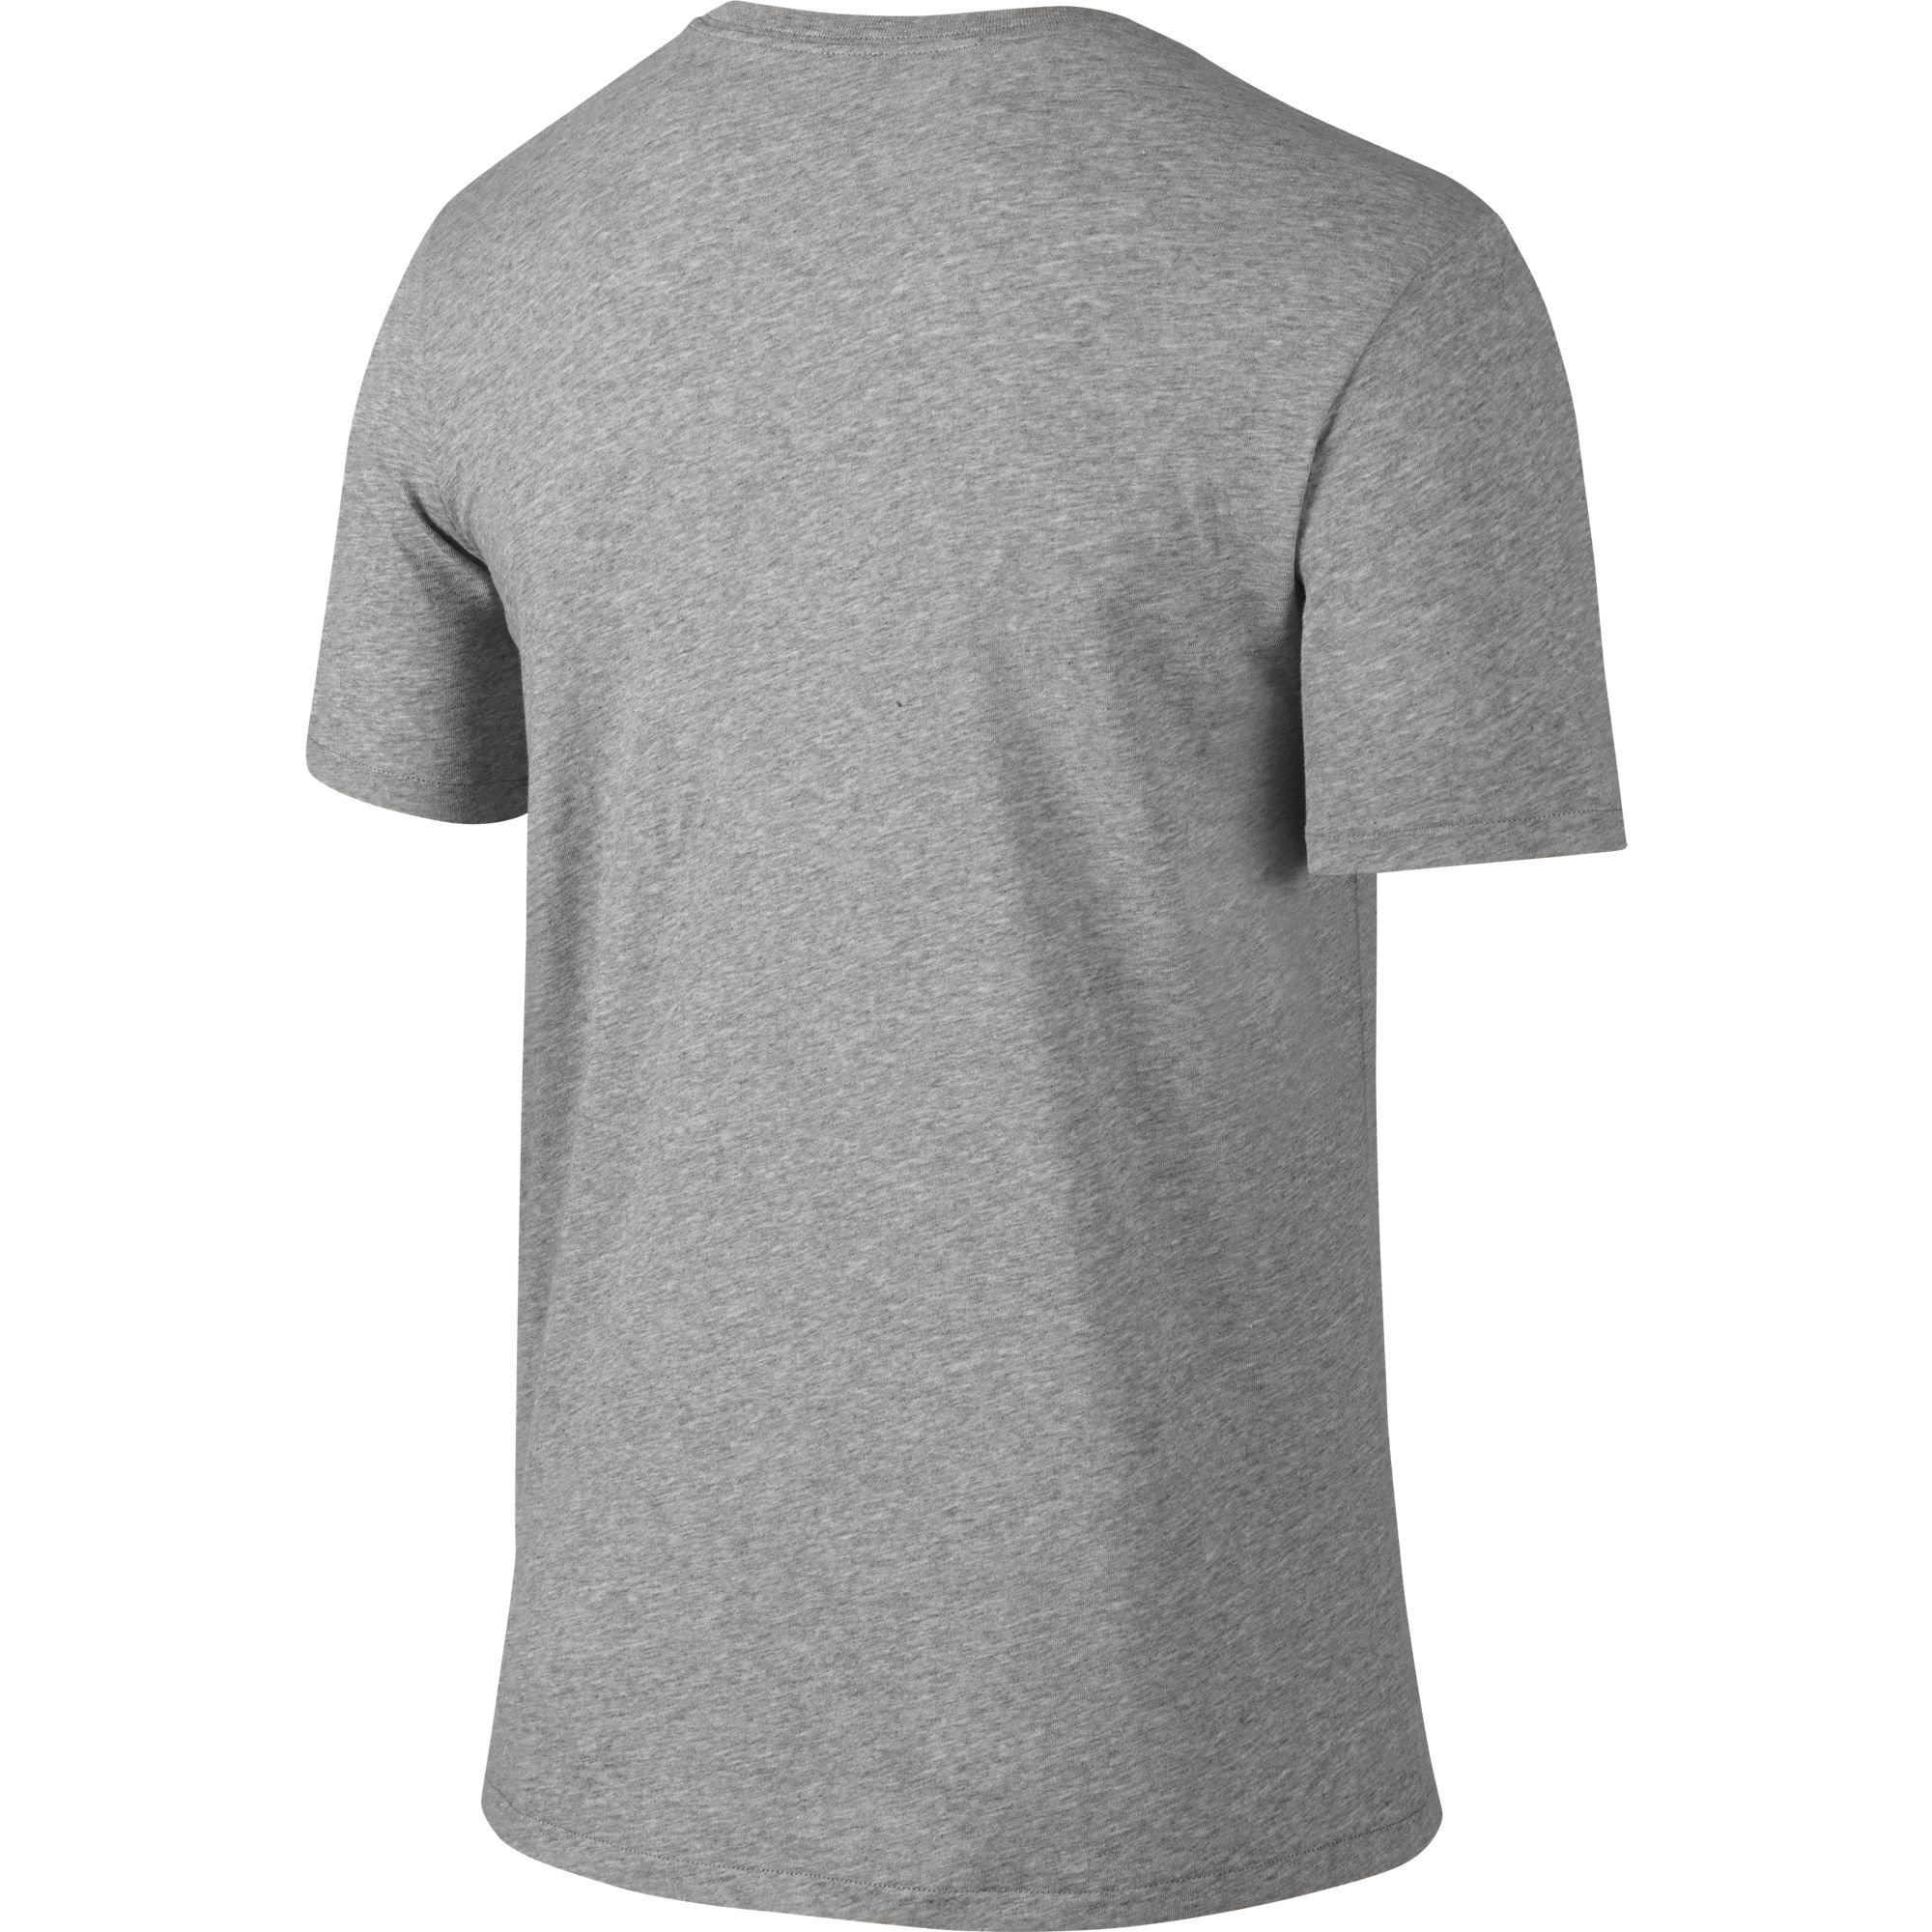 Nike-Men-039-s-Dri-Fit-Training-2-0-T-Shirt-706625 thumbnail 11